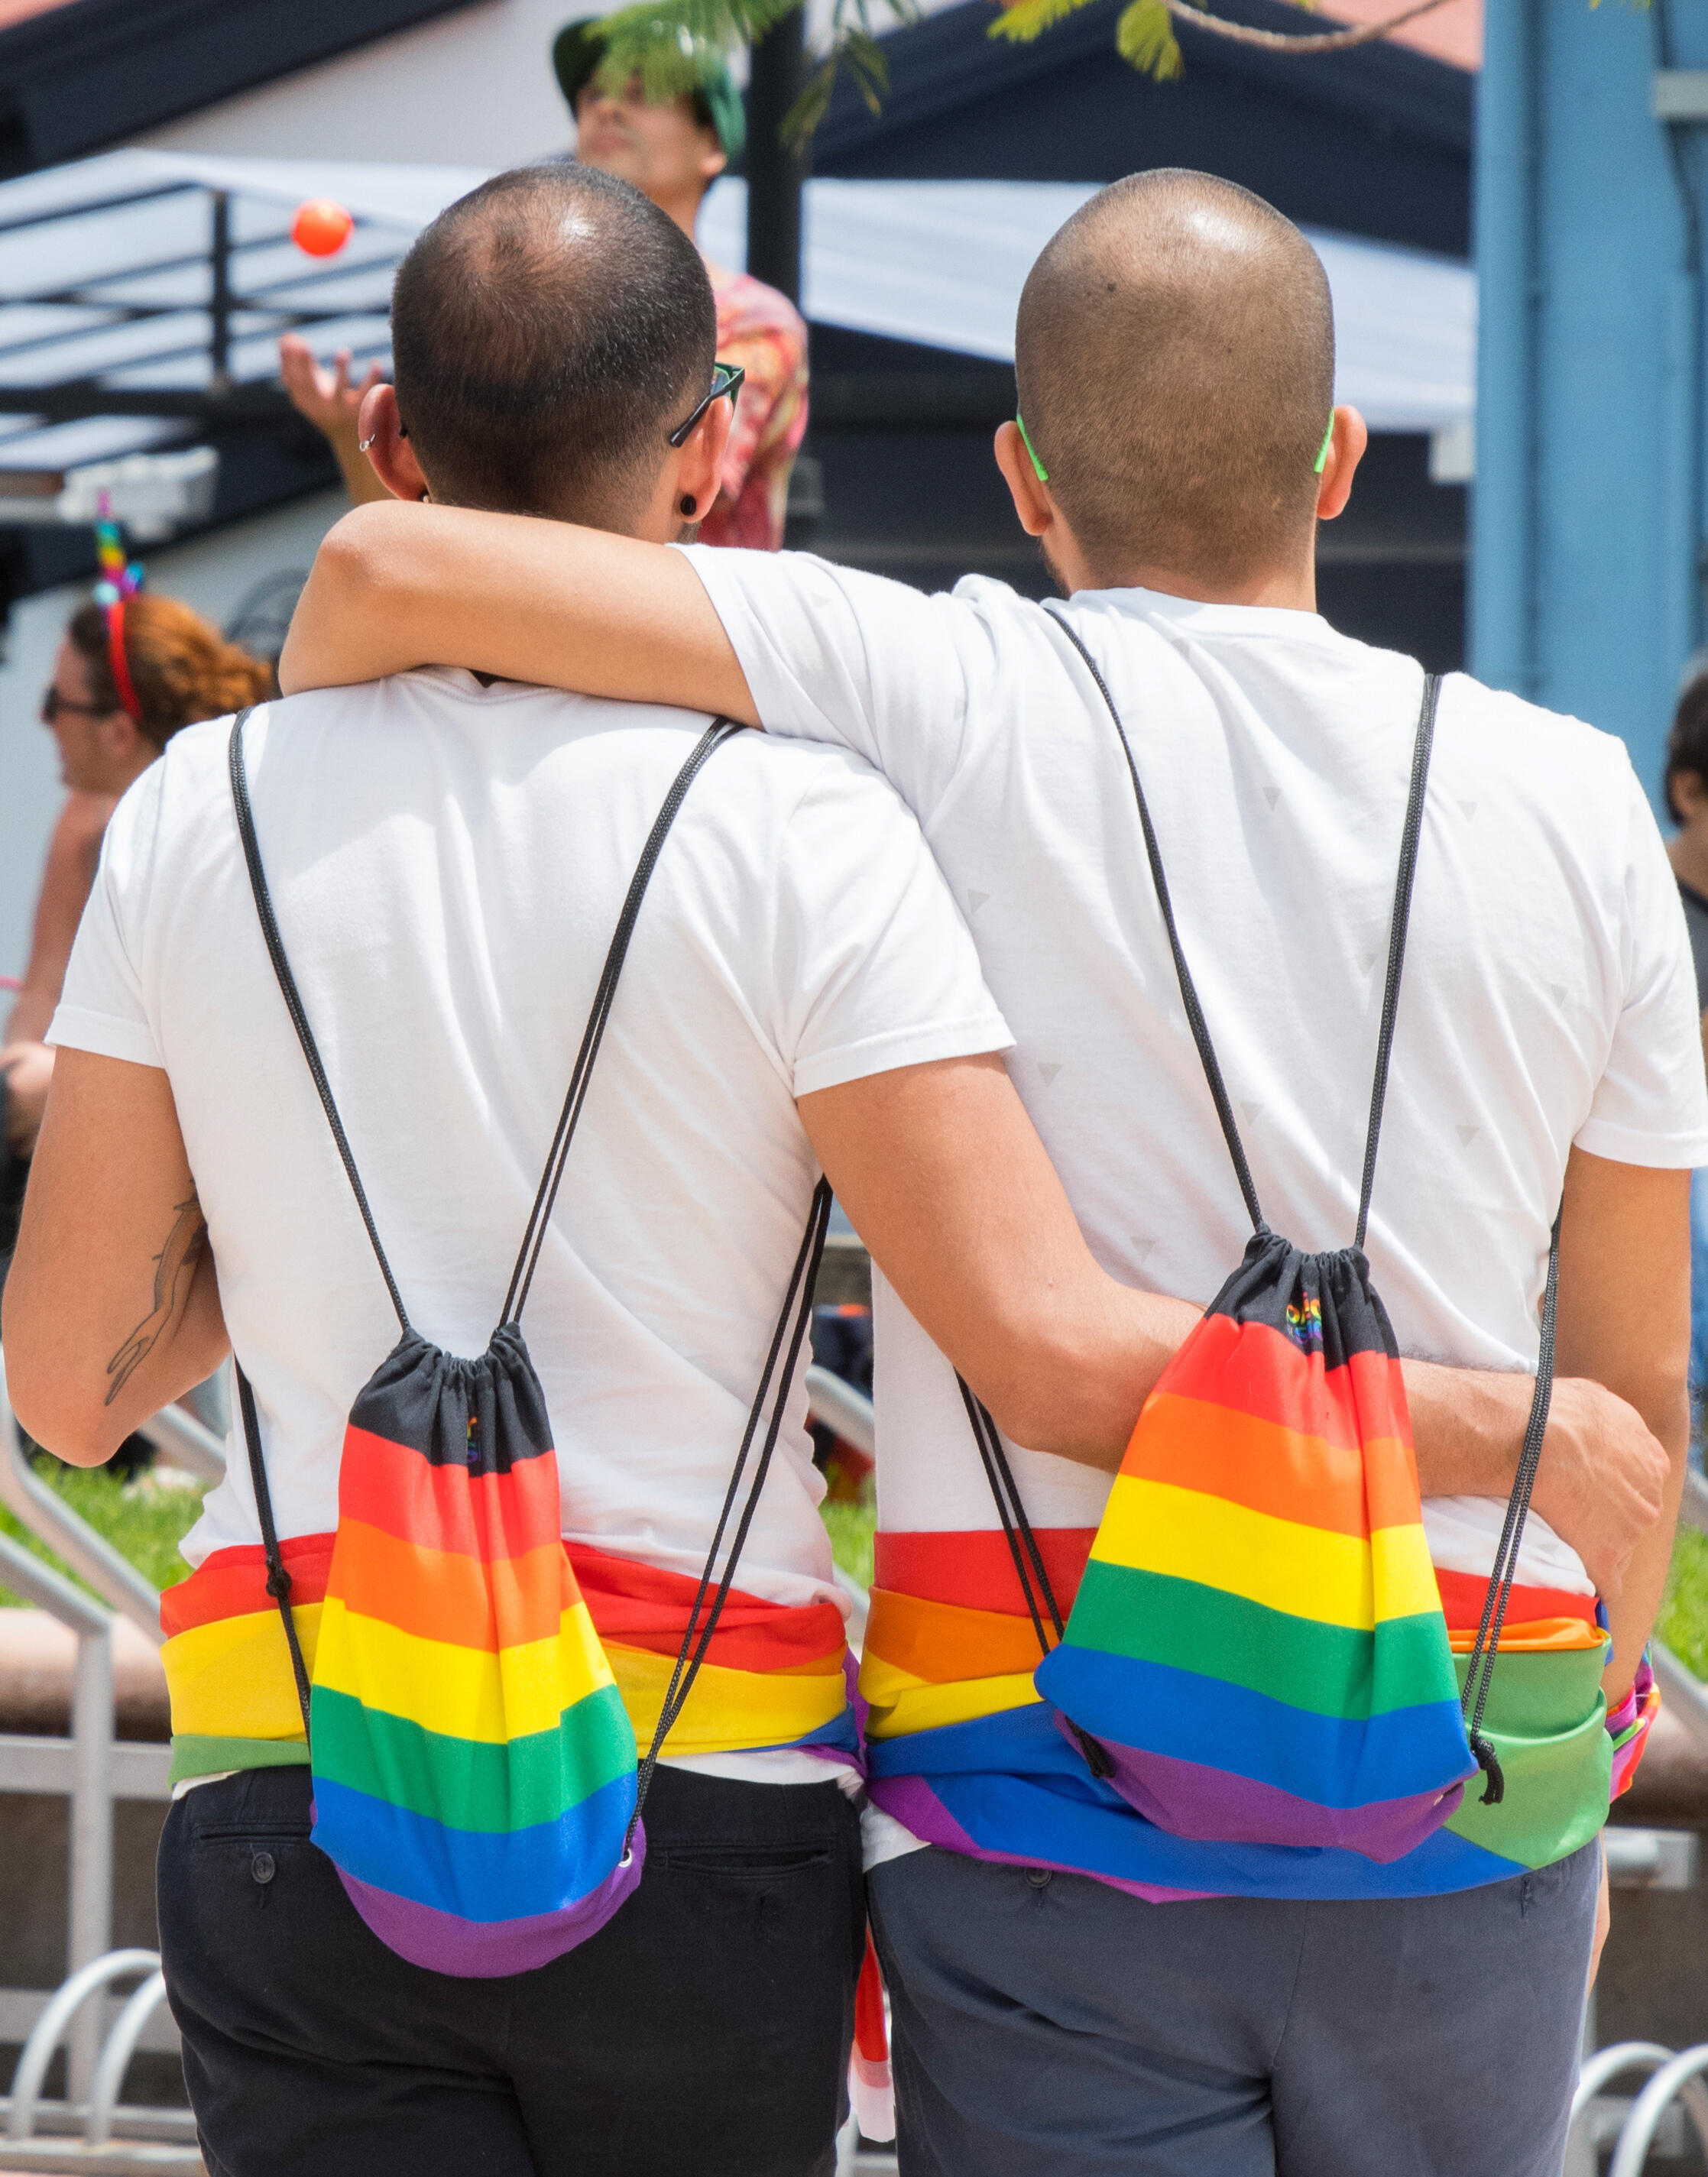 Gay rights activists have long campaigned for the right to marry in Costa Rica